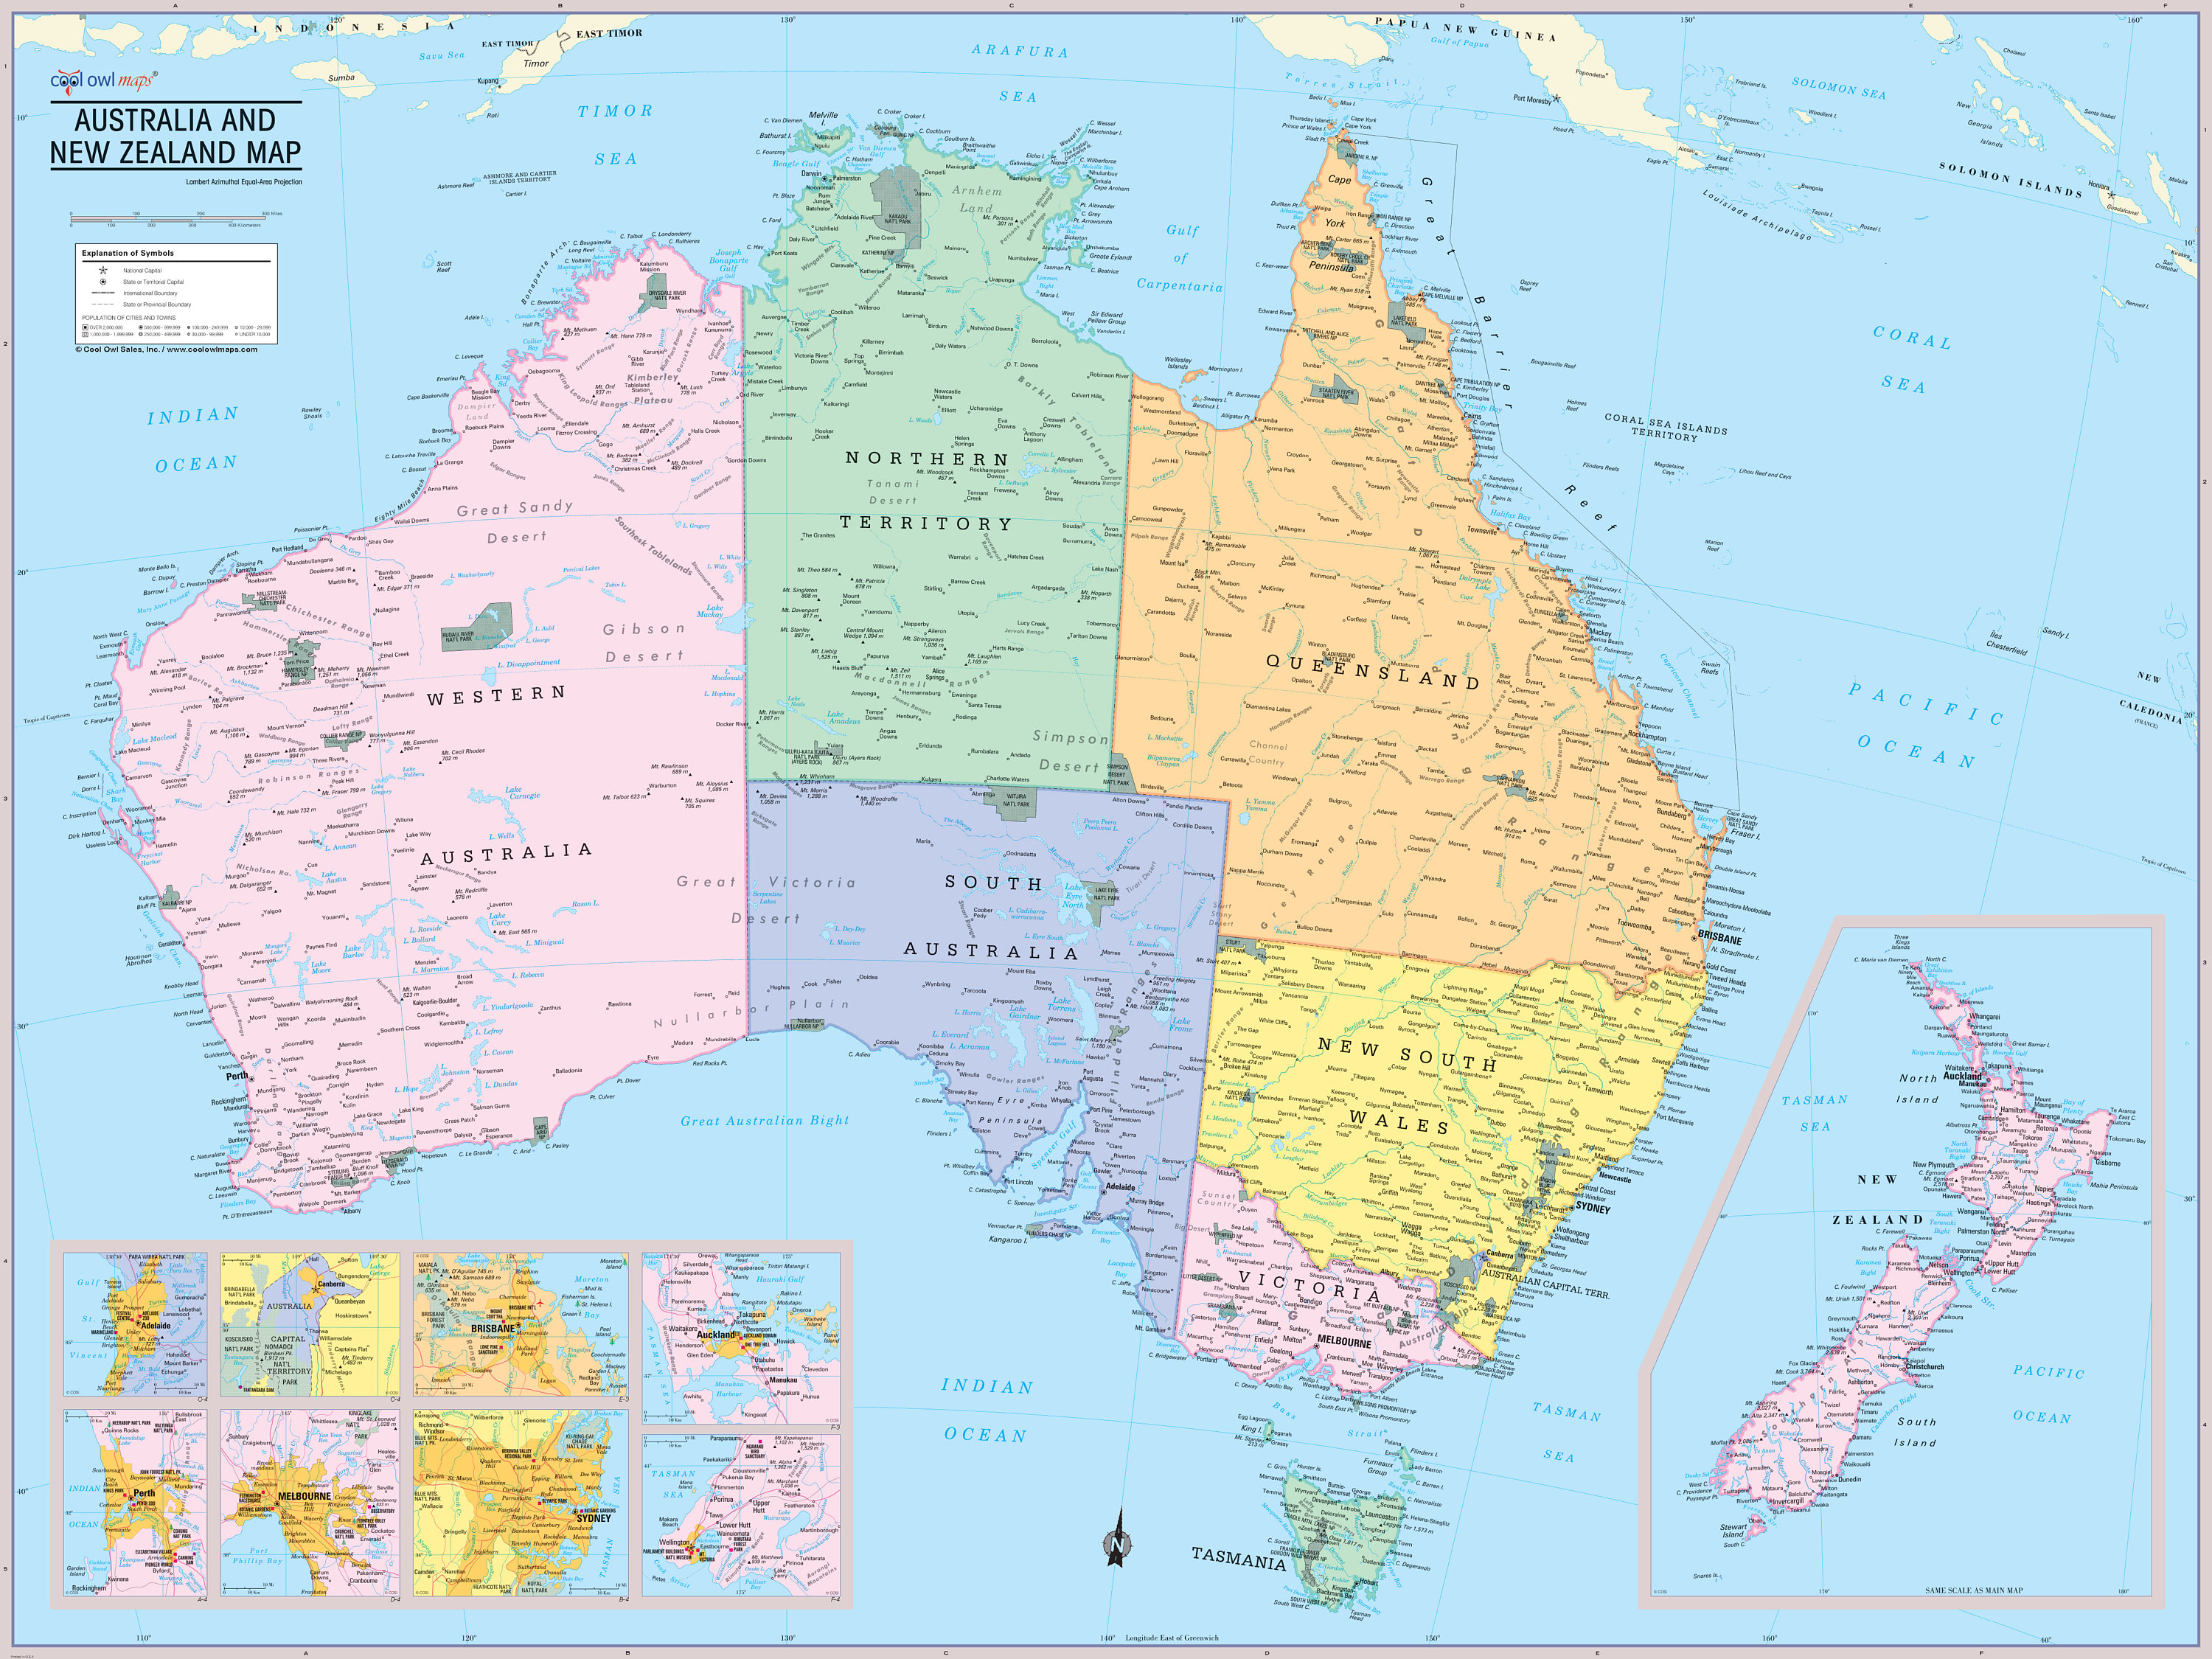 New Zealand Map With Cities And Towns.Australia And New Zealand Map Wall Poster 2019 Etsy